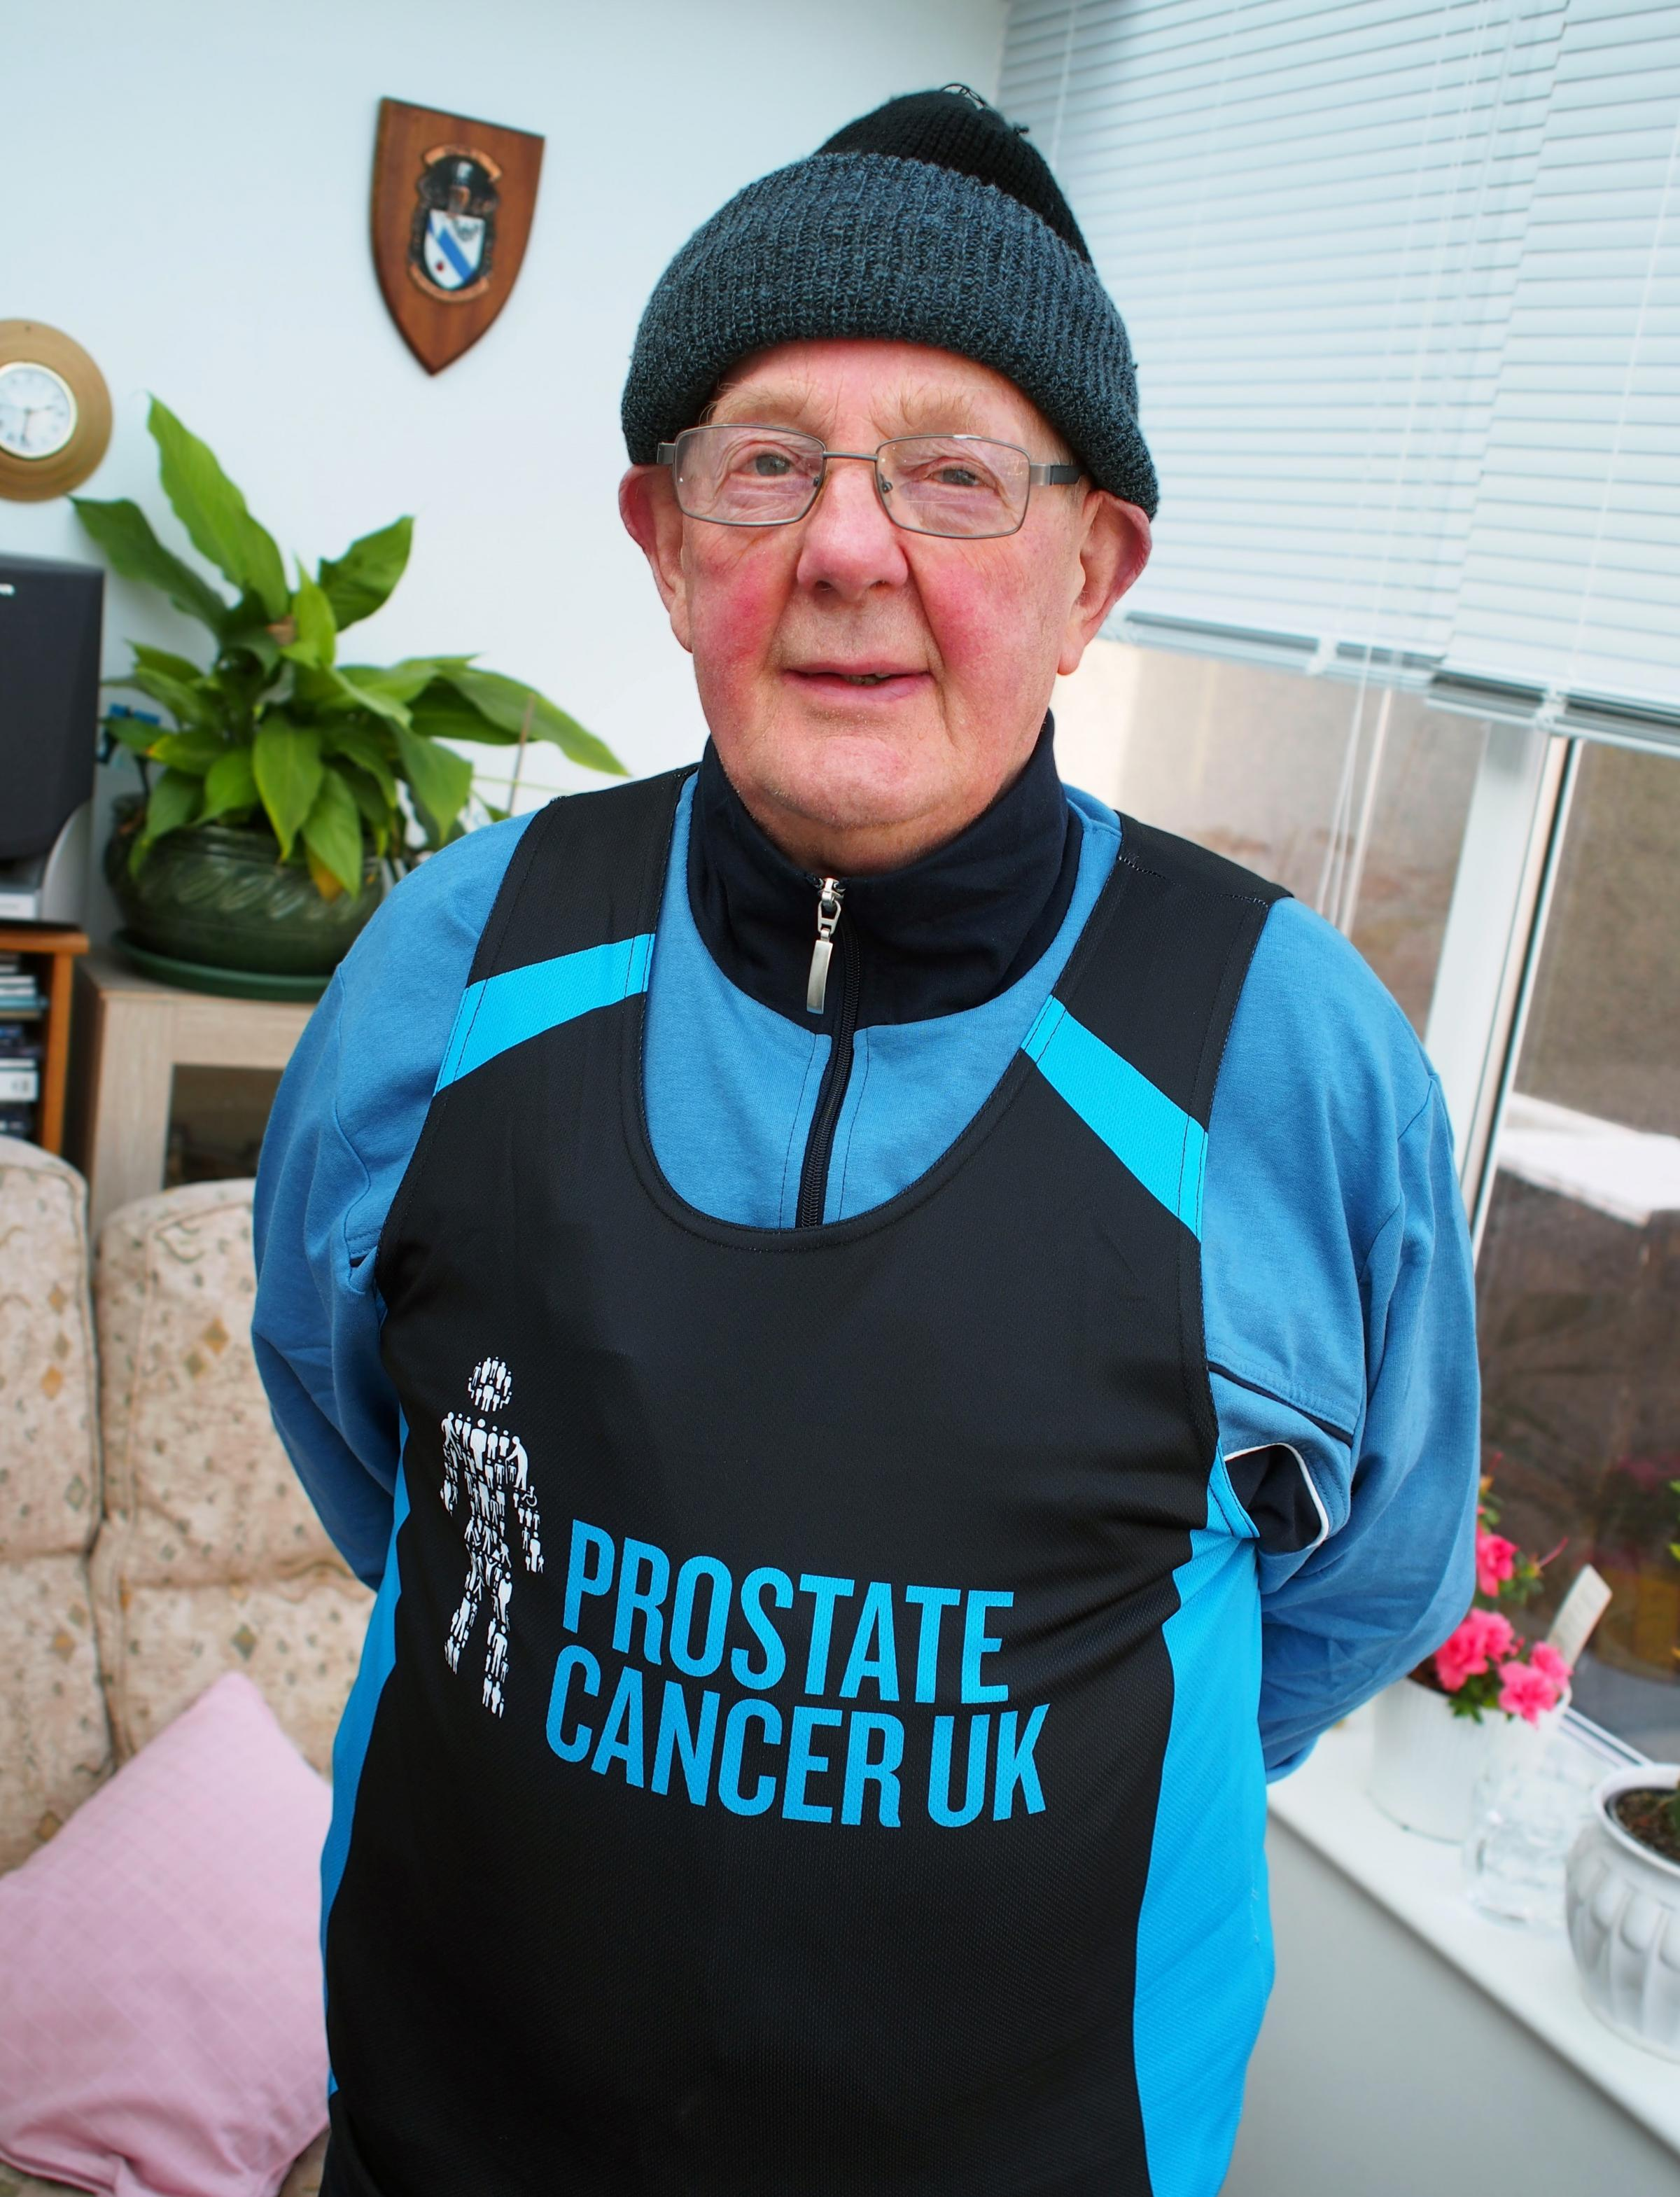 Age is no barrier for running reverend